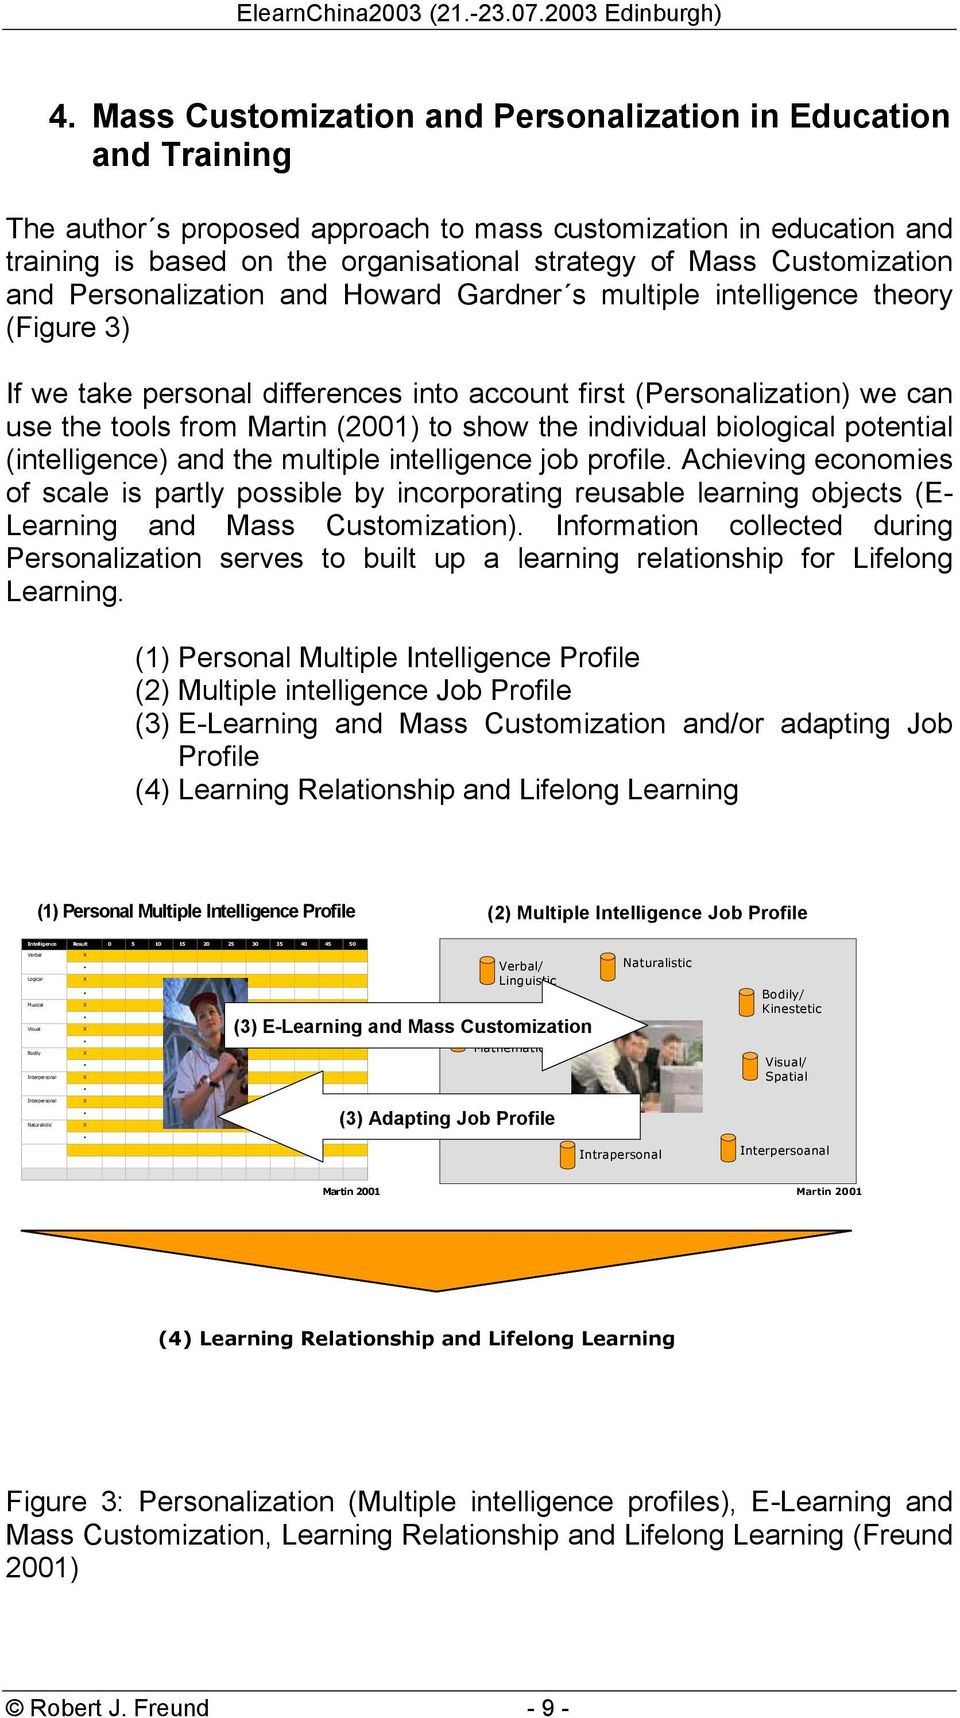 (2001) to show the individual biological potential (intelligence) and the multiple intelligence job profile.